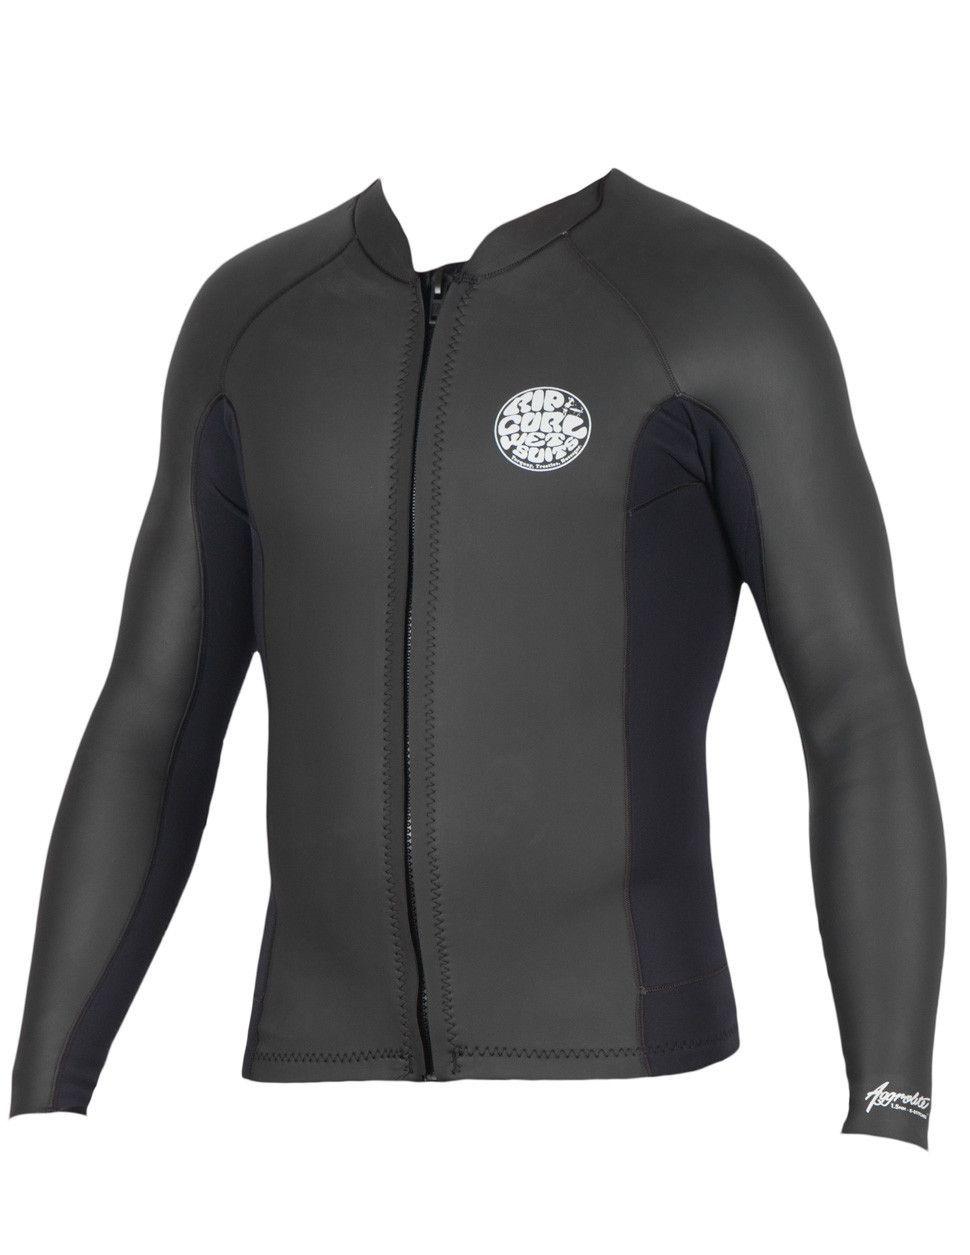 428480103a62 Rip Curl Mens Wetsuit Aggrolite Long Sleeve Front Zip Jacket 1.5mm